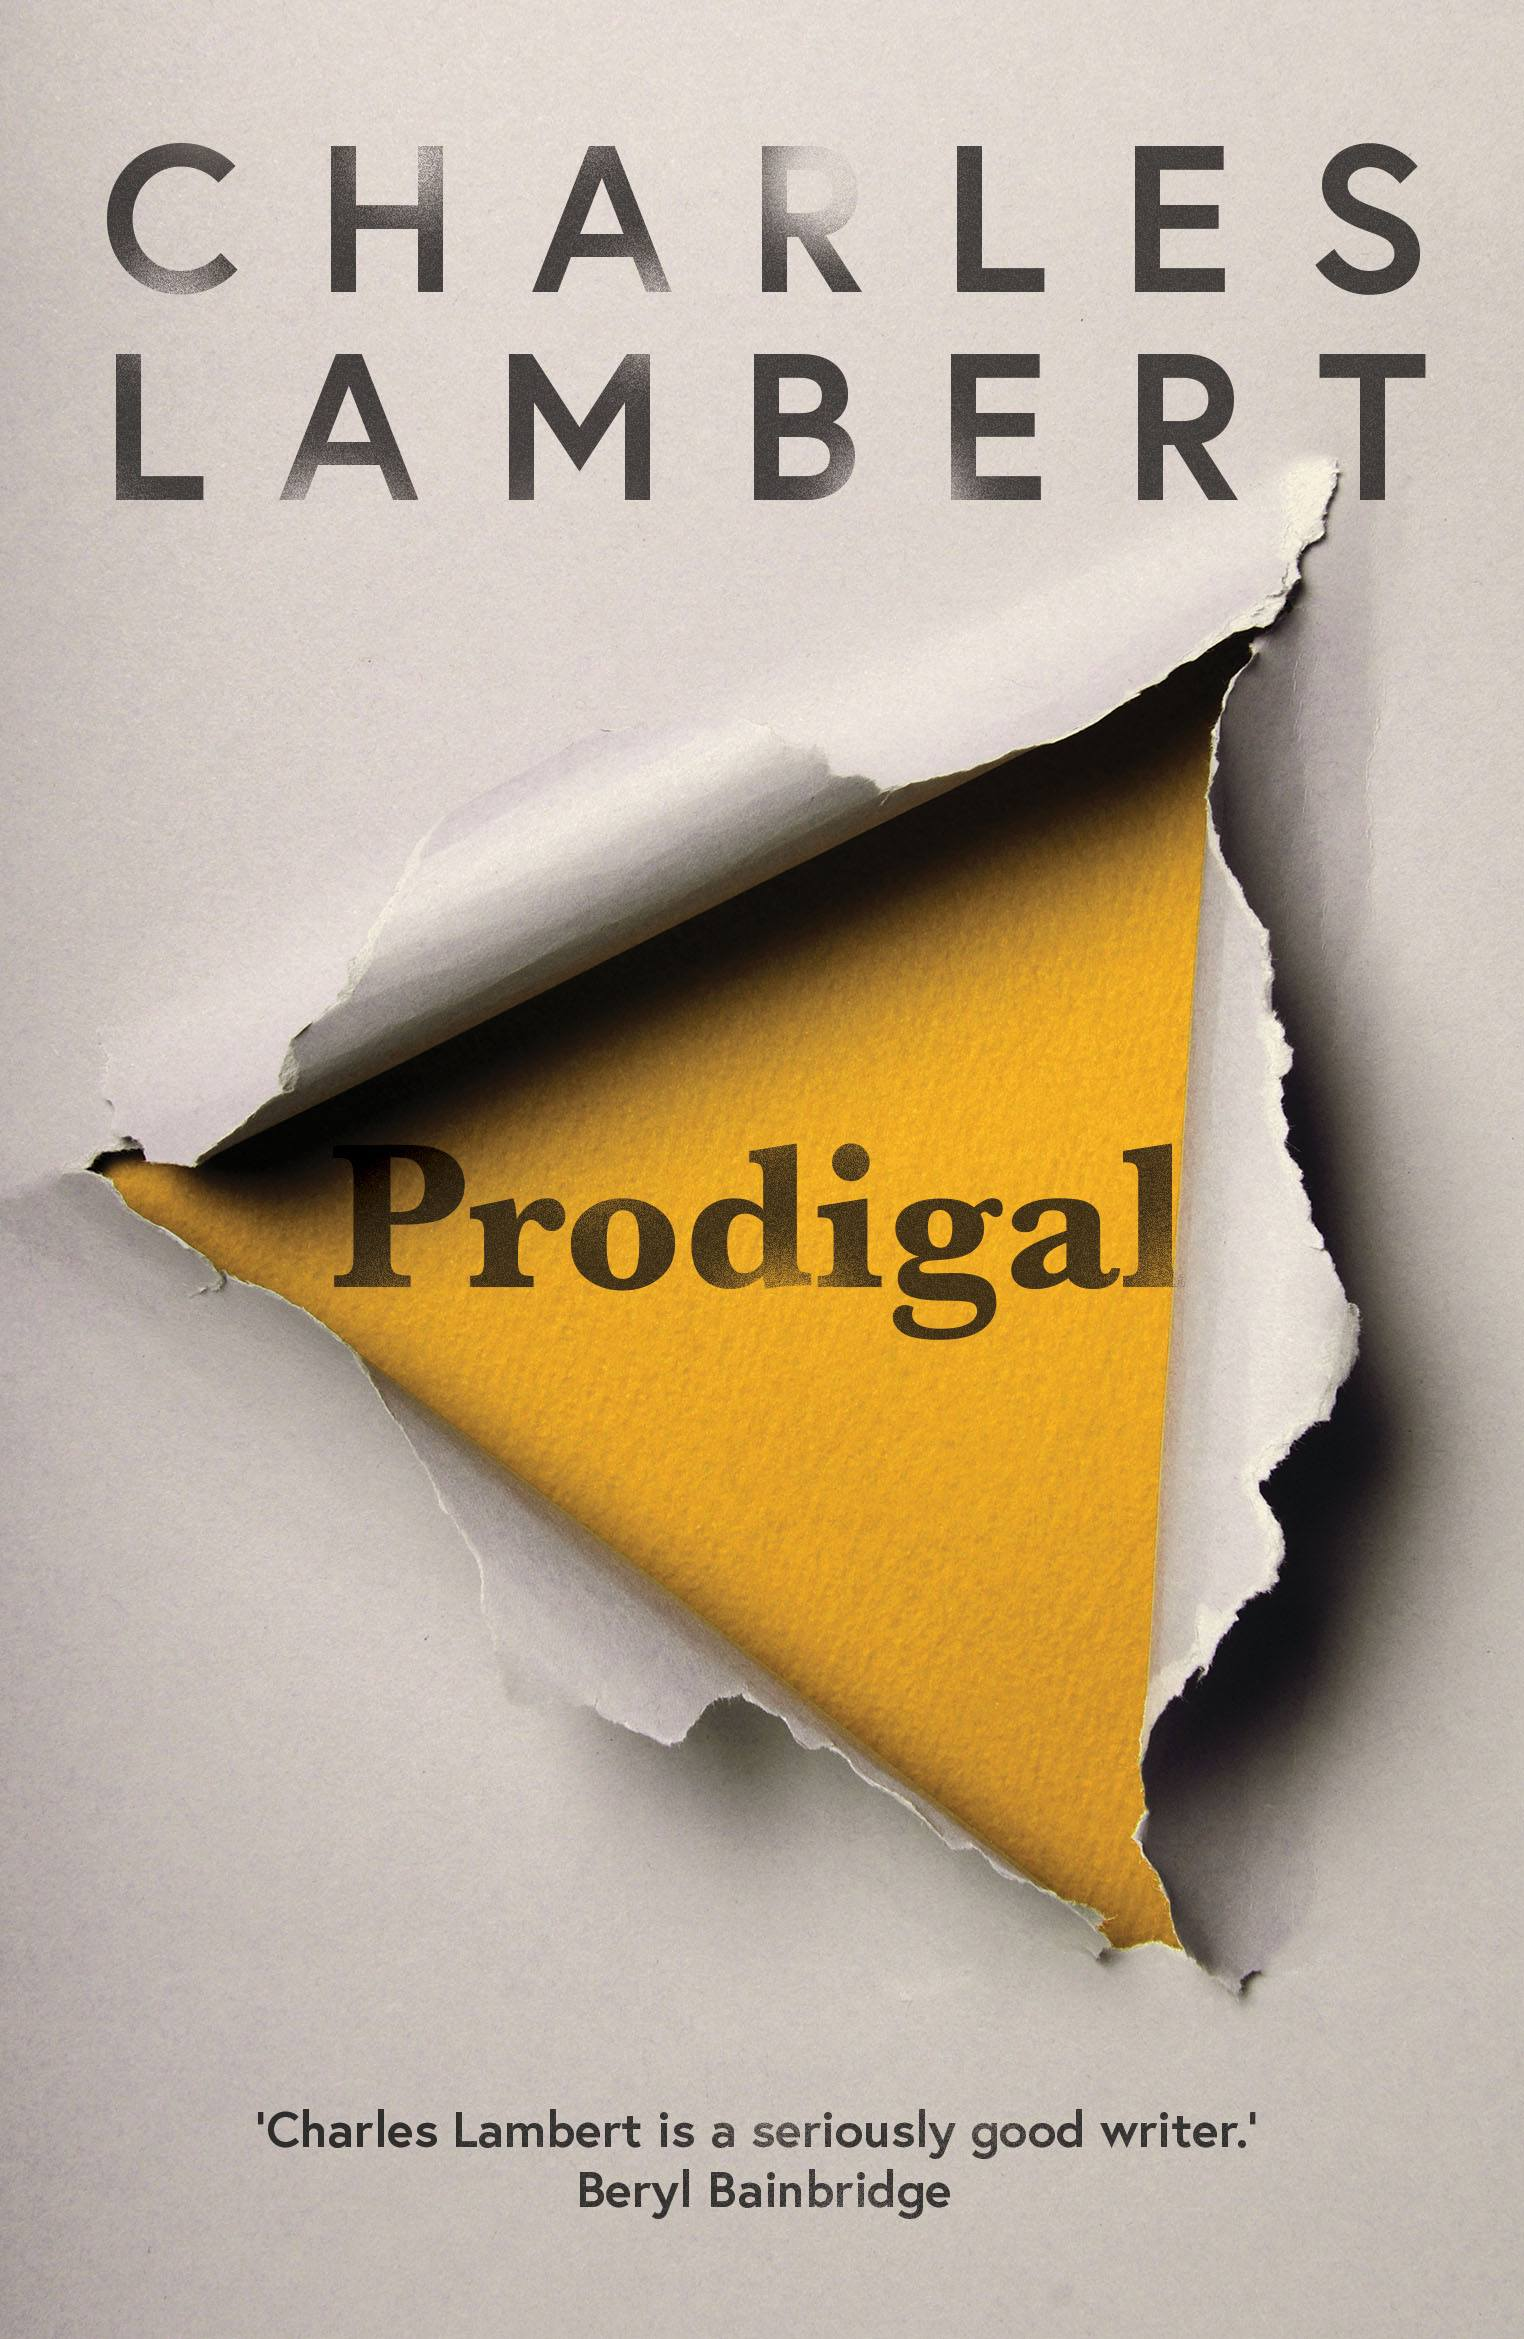 PRODIGAL by Charles Lambert UK cover.jpg